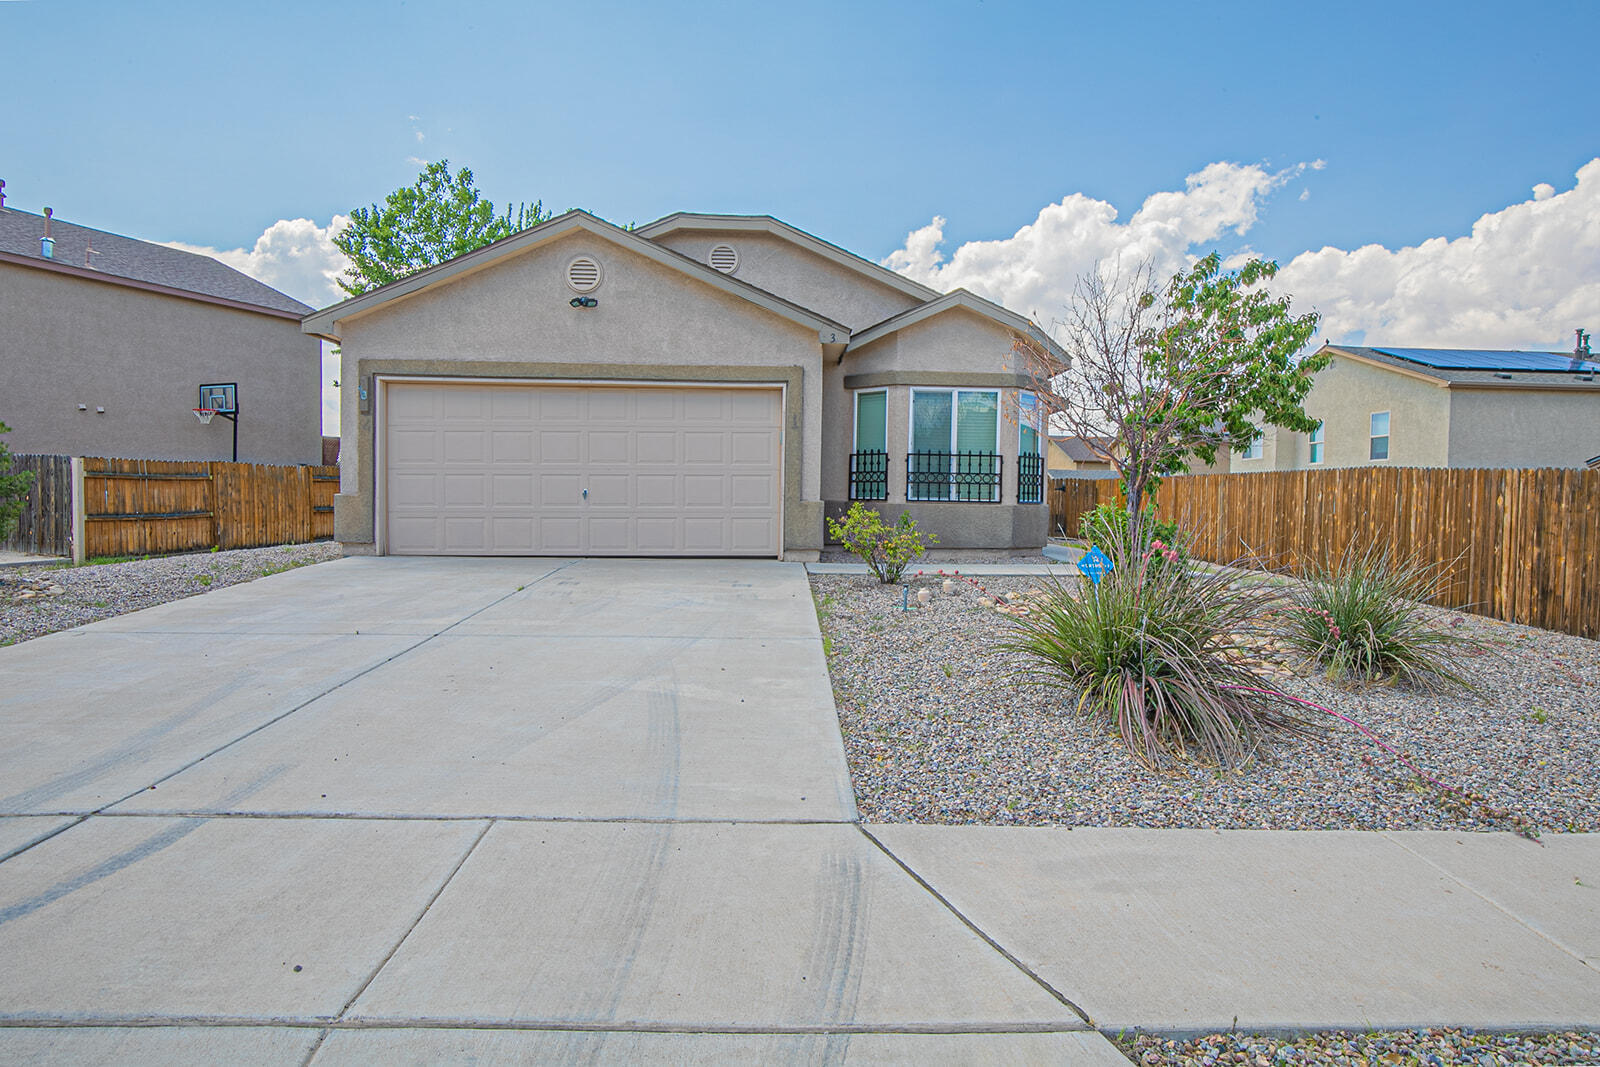 Ready for a new owner!! Open/split floor plan with Master bedroom separate.  Beautiful views of Manzano Mountains and Tome Hill.  Lots of Natural Light, refrigerated air, window blinds, clean and ready to move in.  Fully landscaped, fenced in back yard, come and see this great home today.